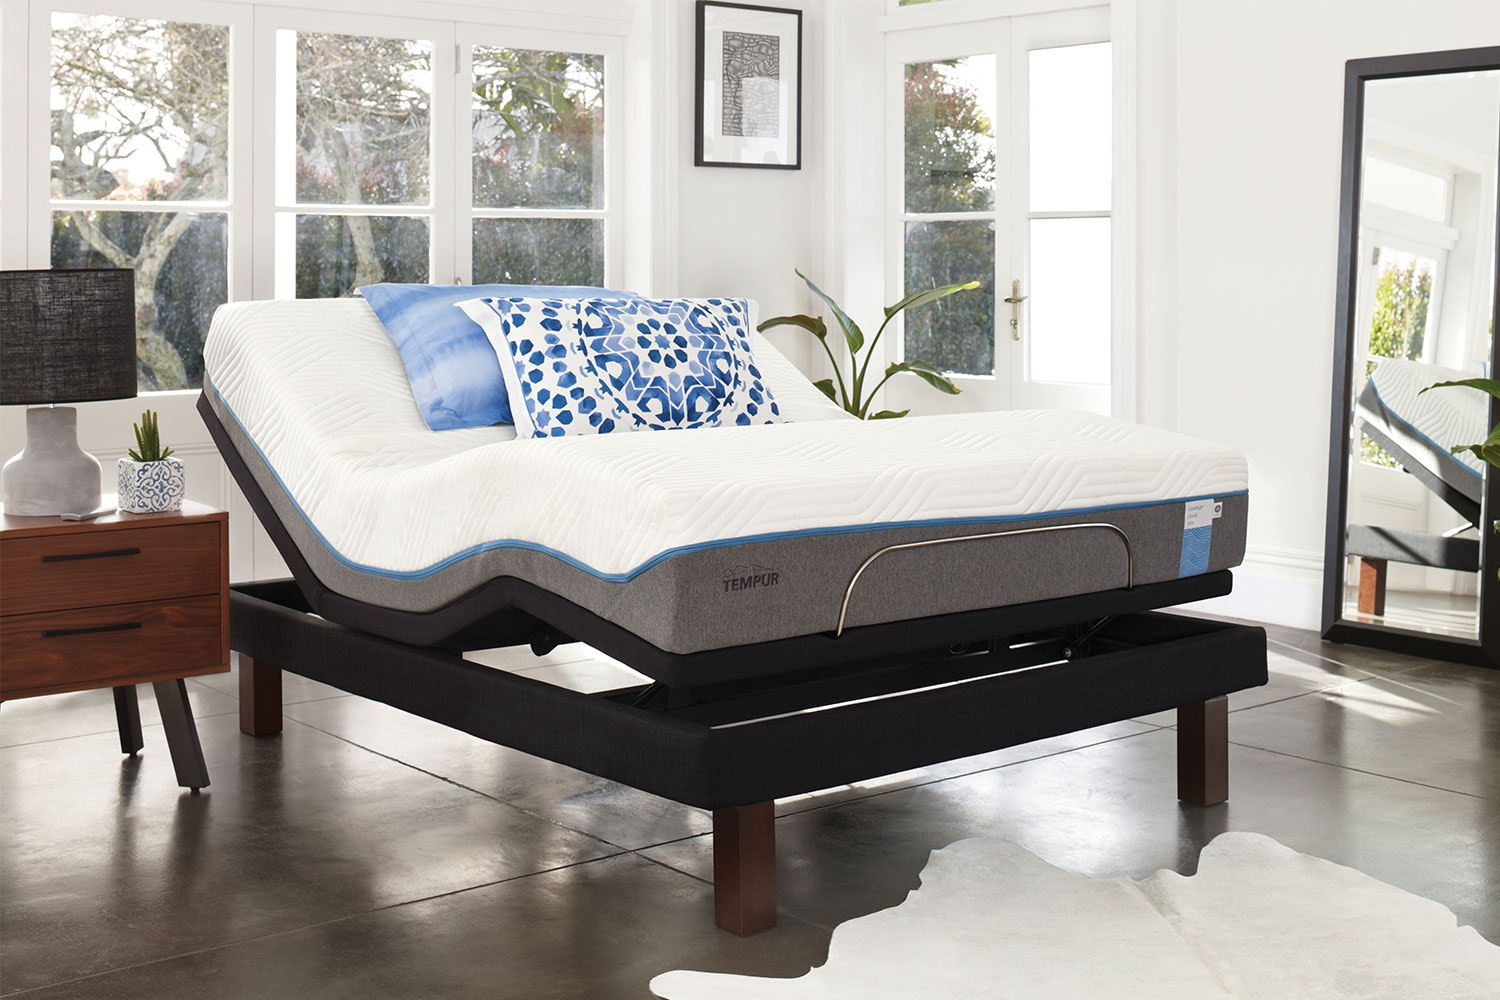 Nova Elite King Single Mattress with Platinum Adjustable Base by Tempur